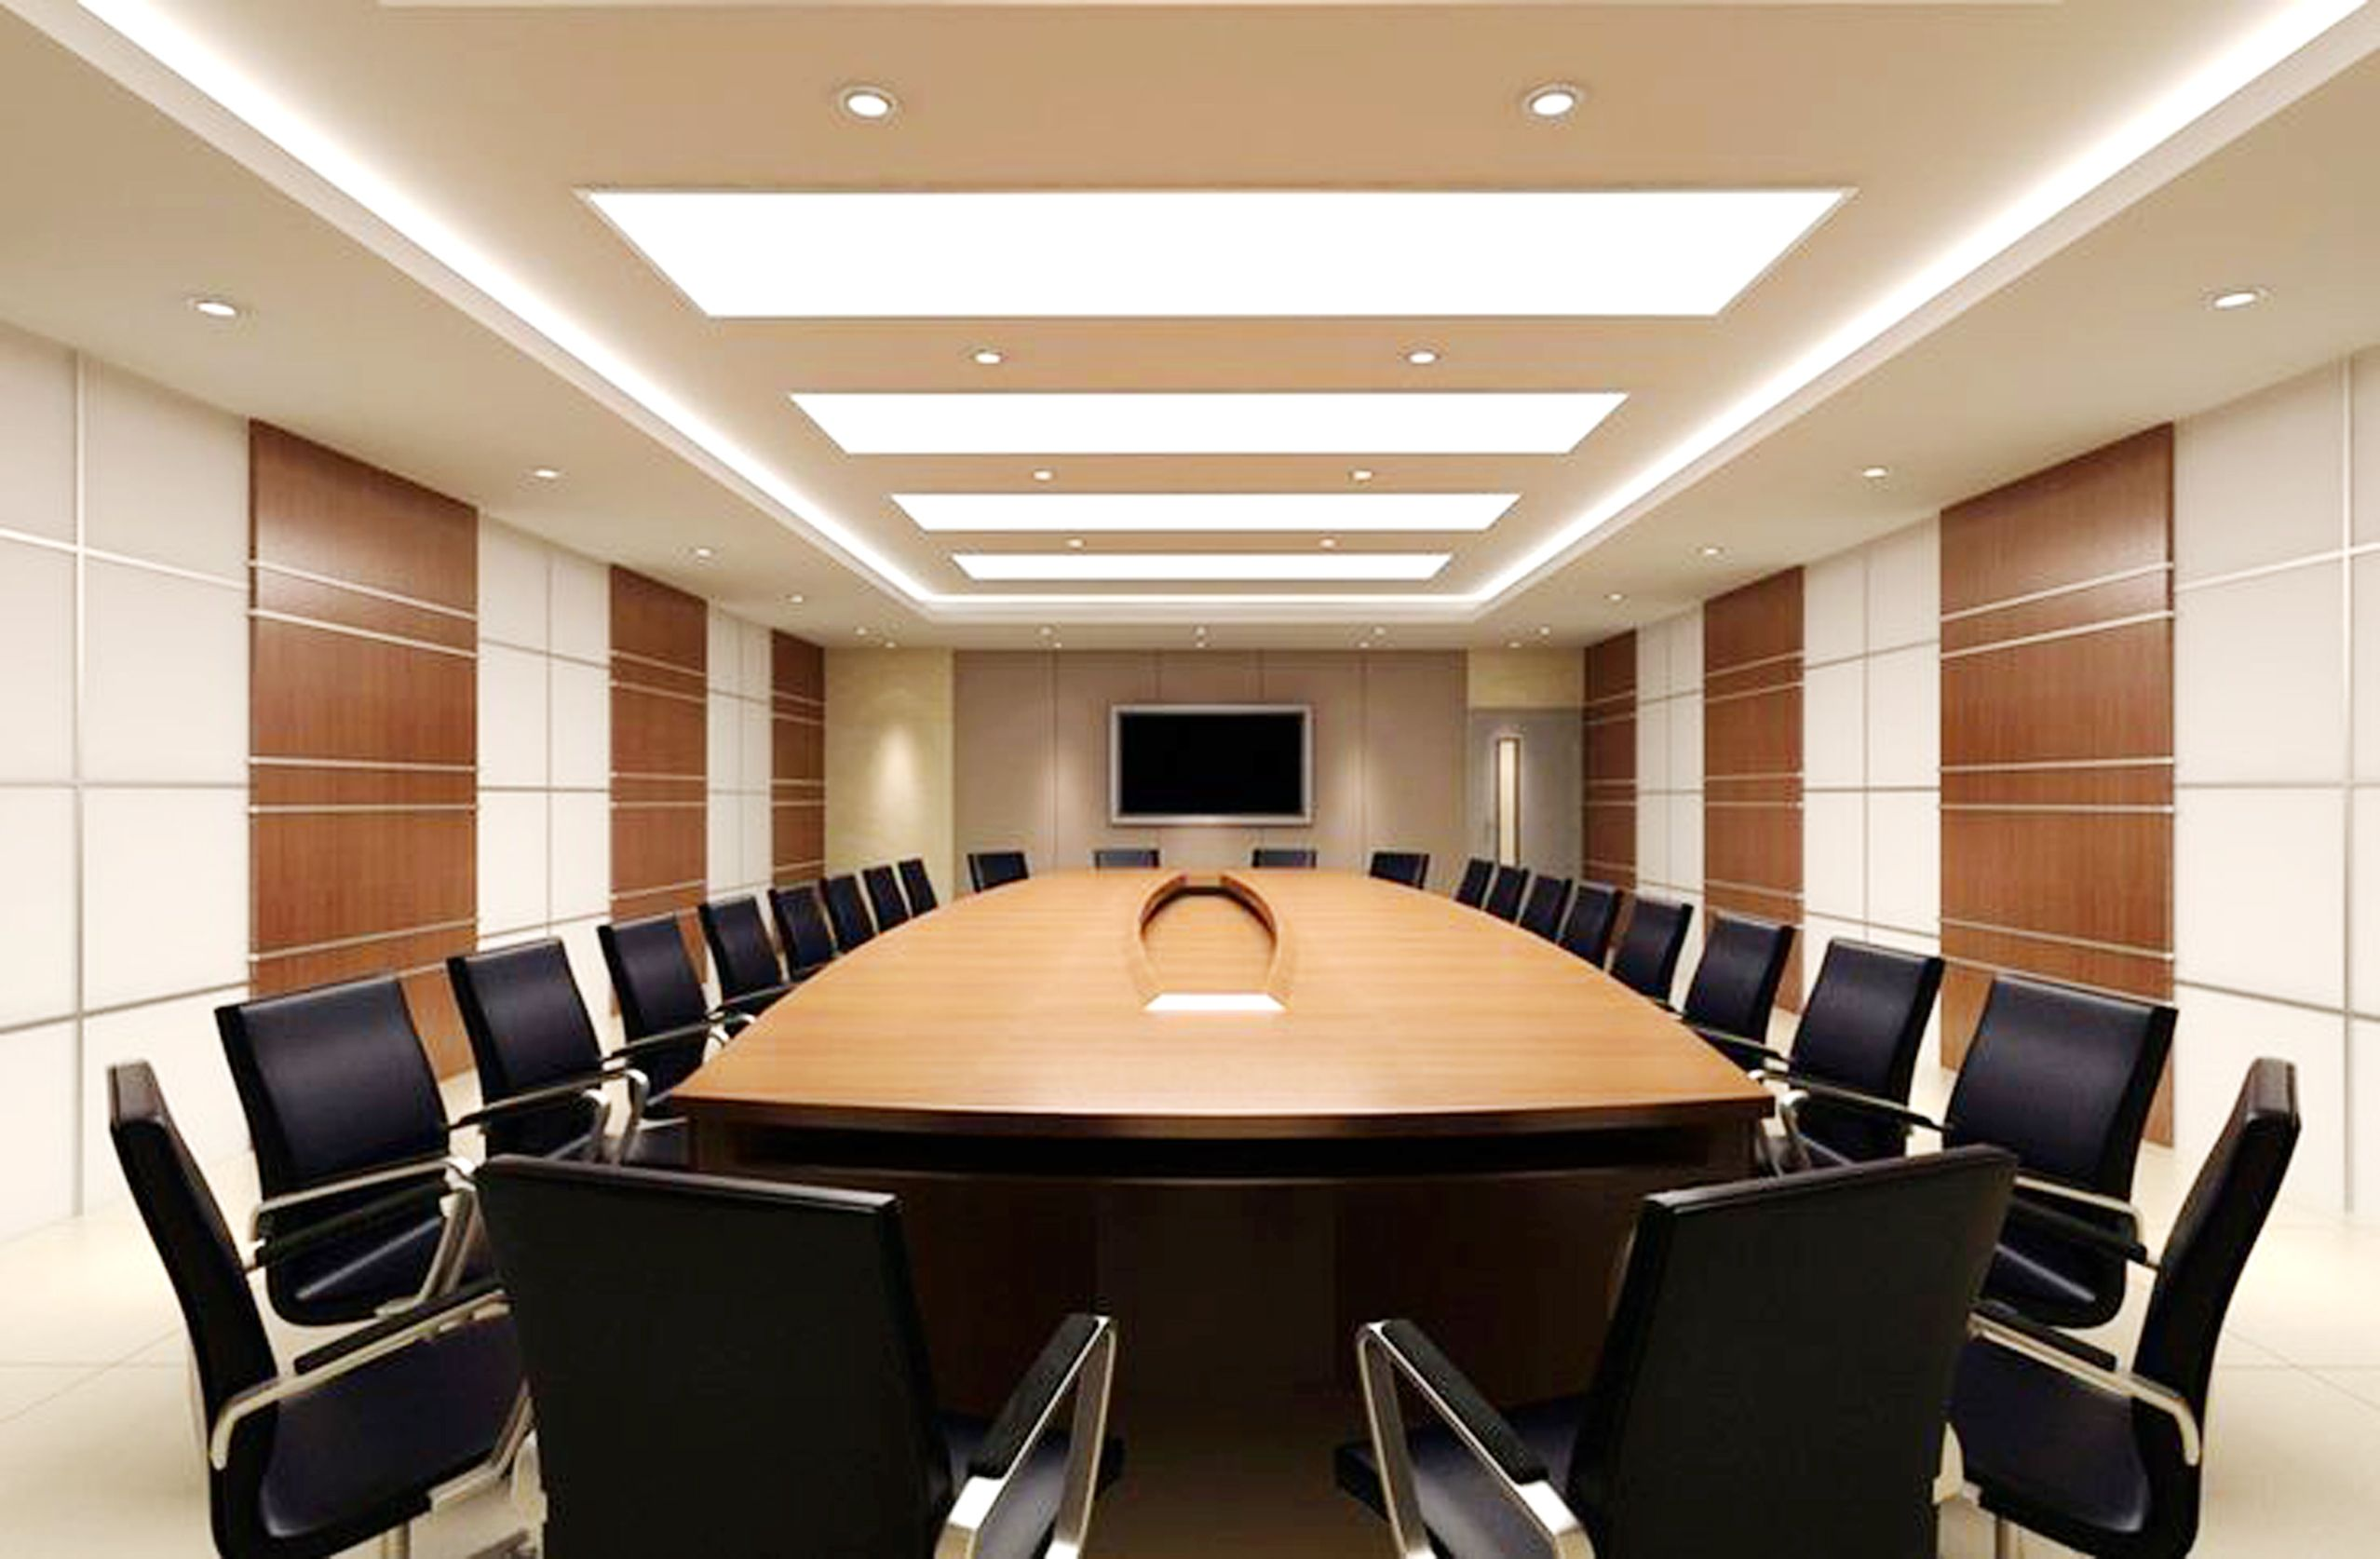 Prijector provides wireless presentation in metting - Interior design ideas for conference rooms ...